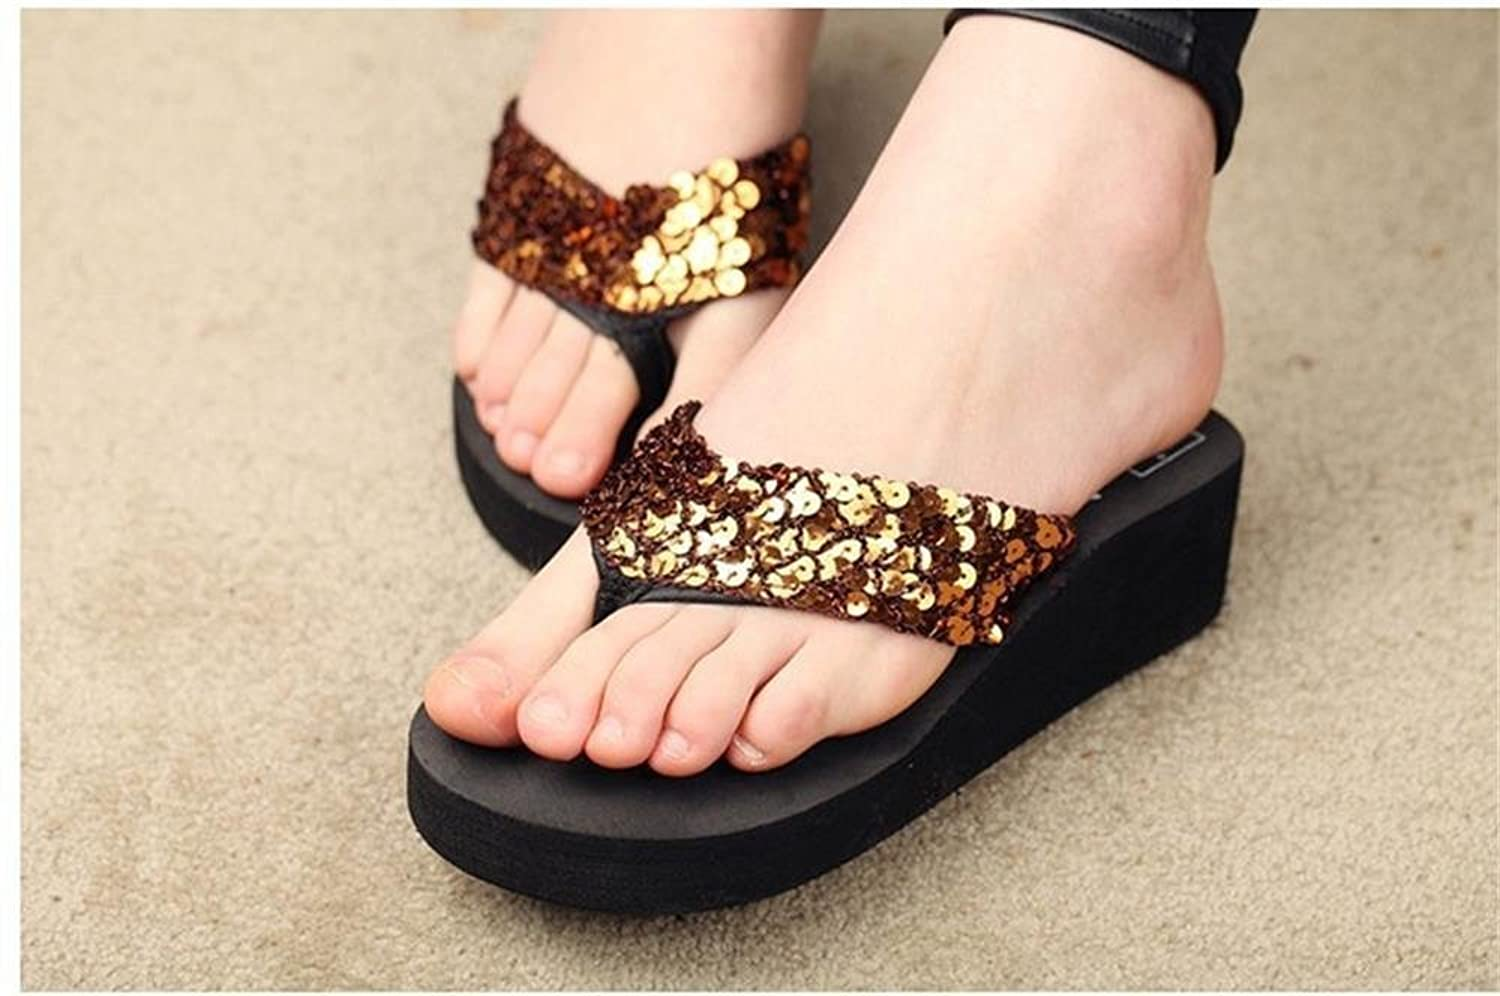 Flat heel sandals images - Minetom Women S Sandals Mules Sequin Glitter Sandals Beach Home Slippers Flip Flops Flat Slippers Summer Casual Shoes Holiday Accessary Amazon Co Uk